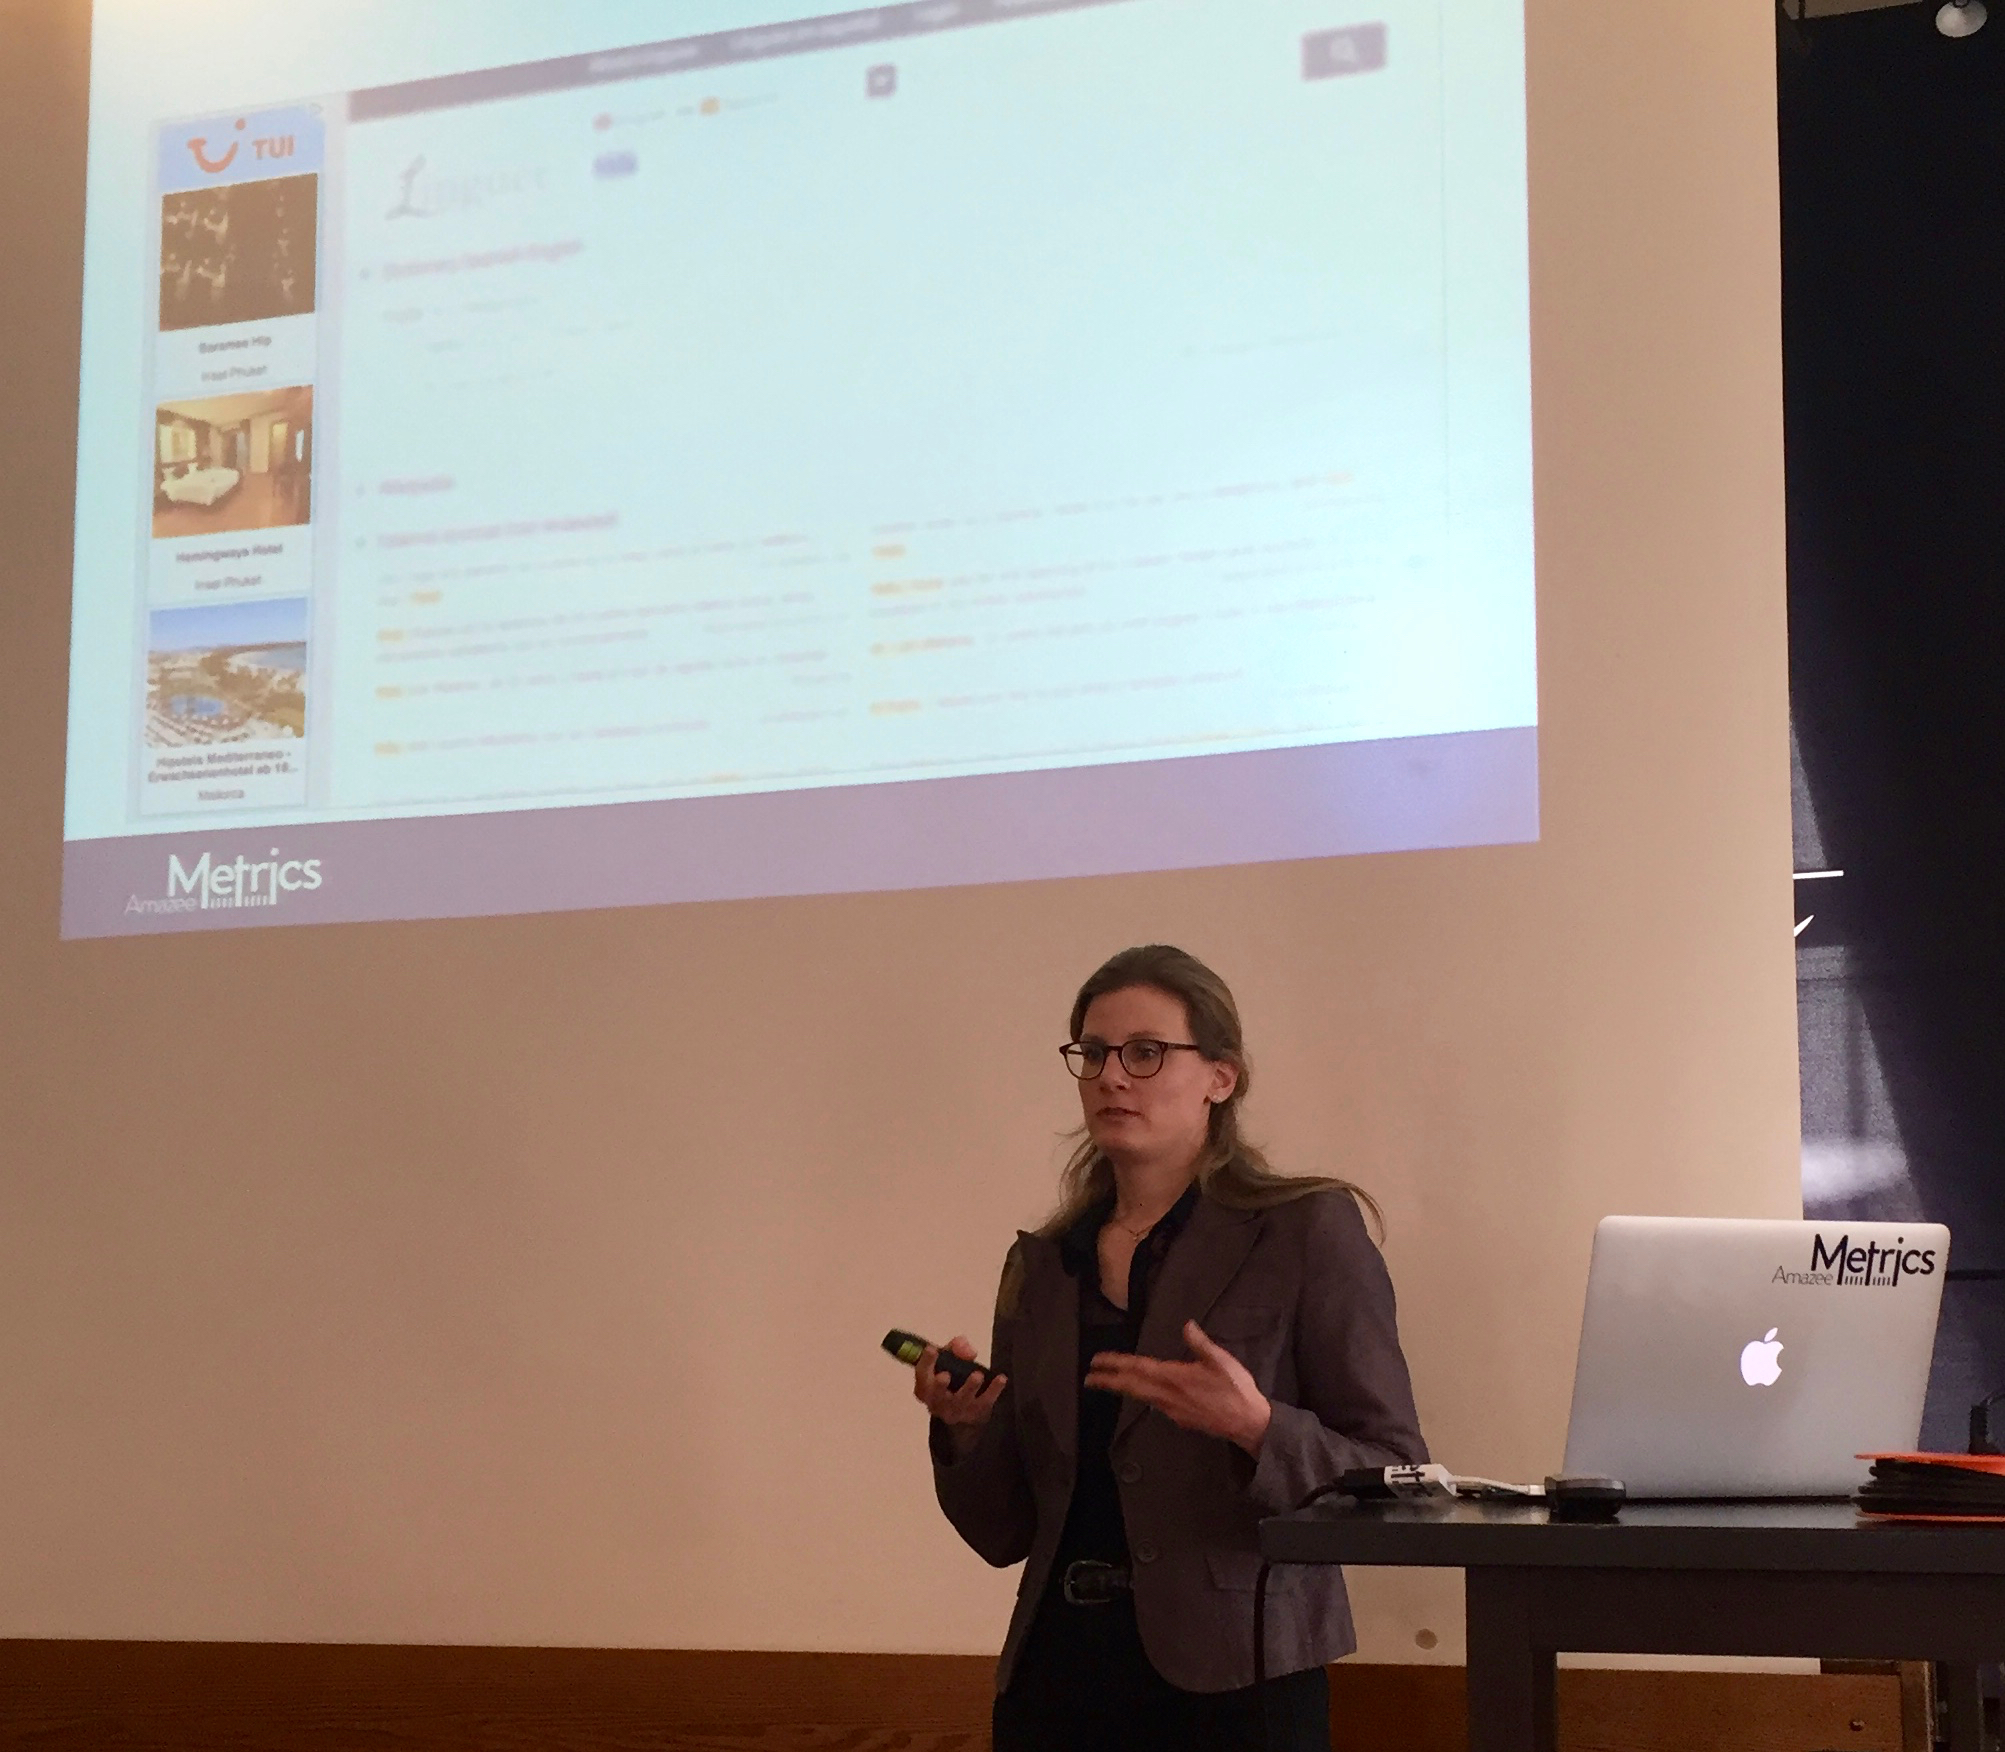 Christina Meyer giving her presentation at the AdWords Conference